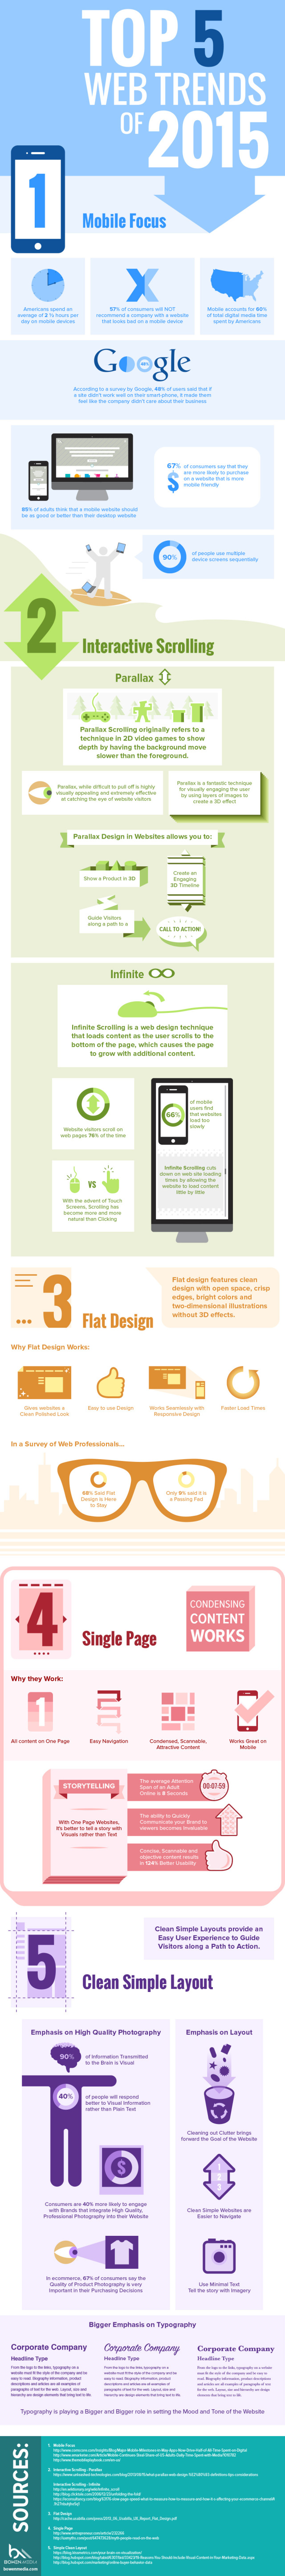 Top 5 web trends for 2015.